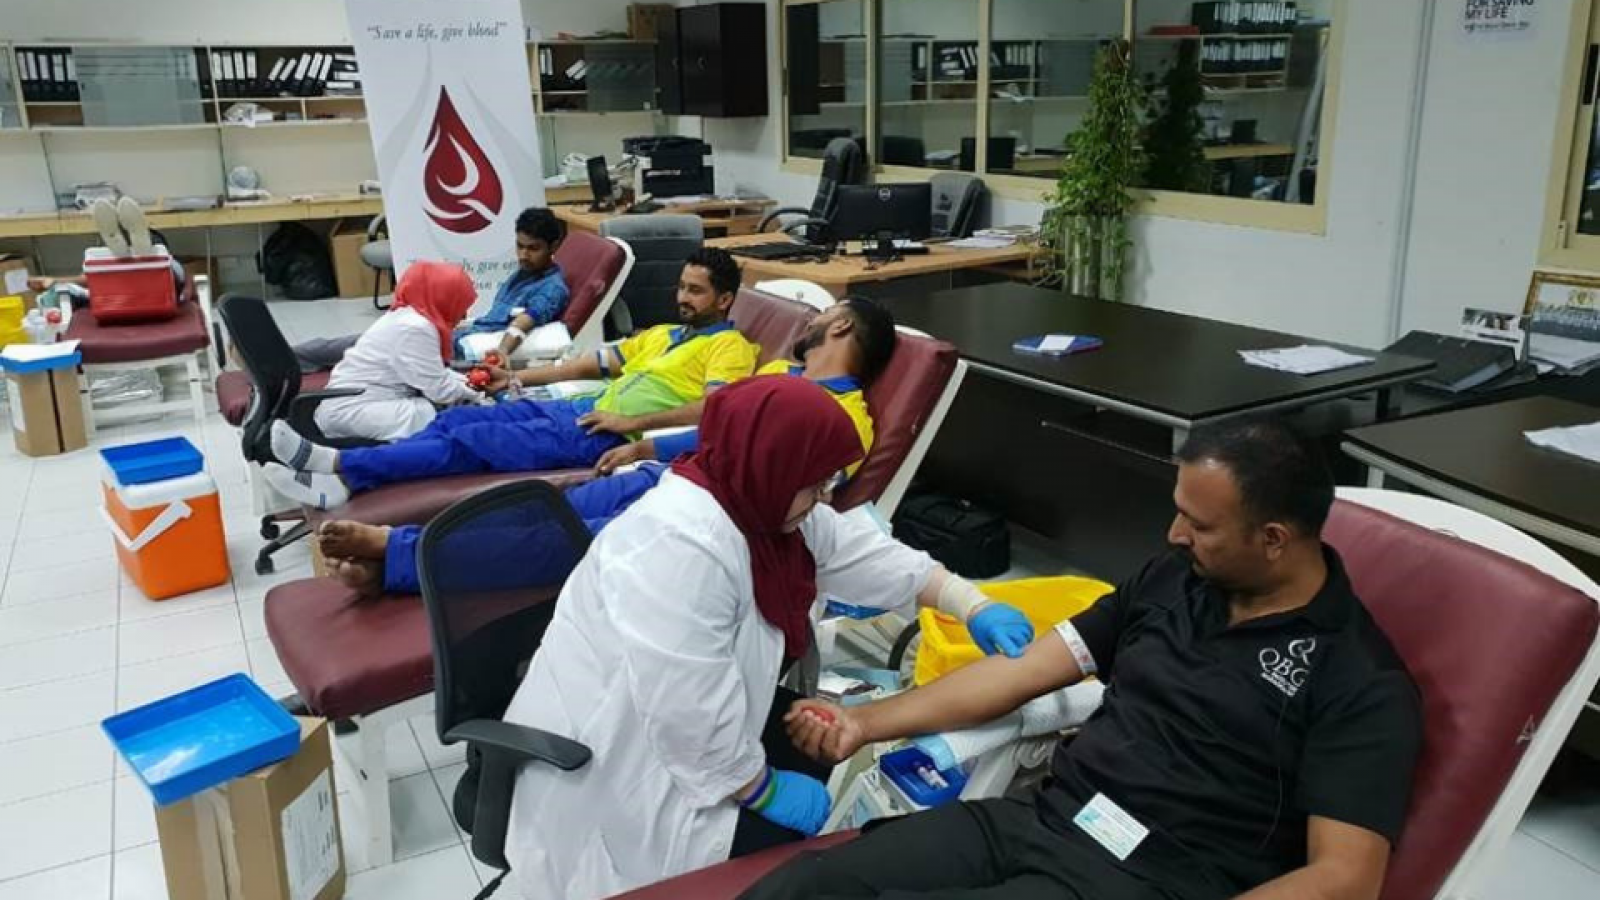 QBG UAE Holds Blood Donation Campaign at Qurum Village 1, Jebel Ali